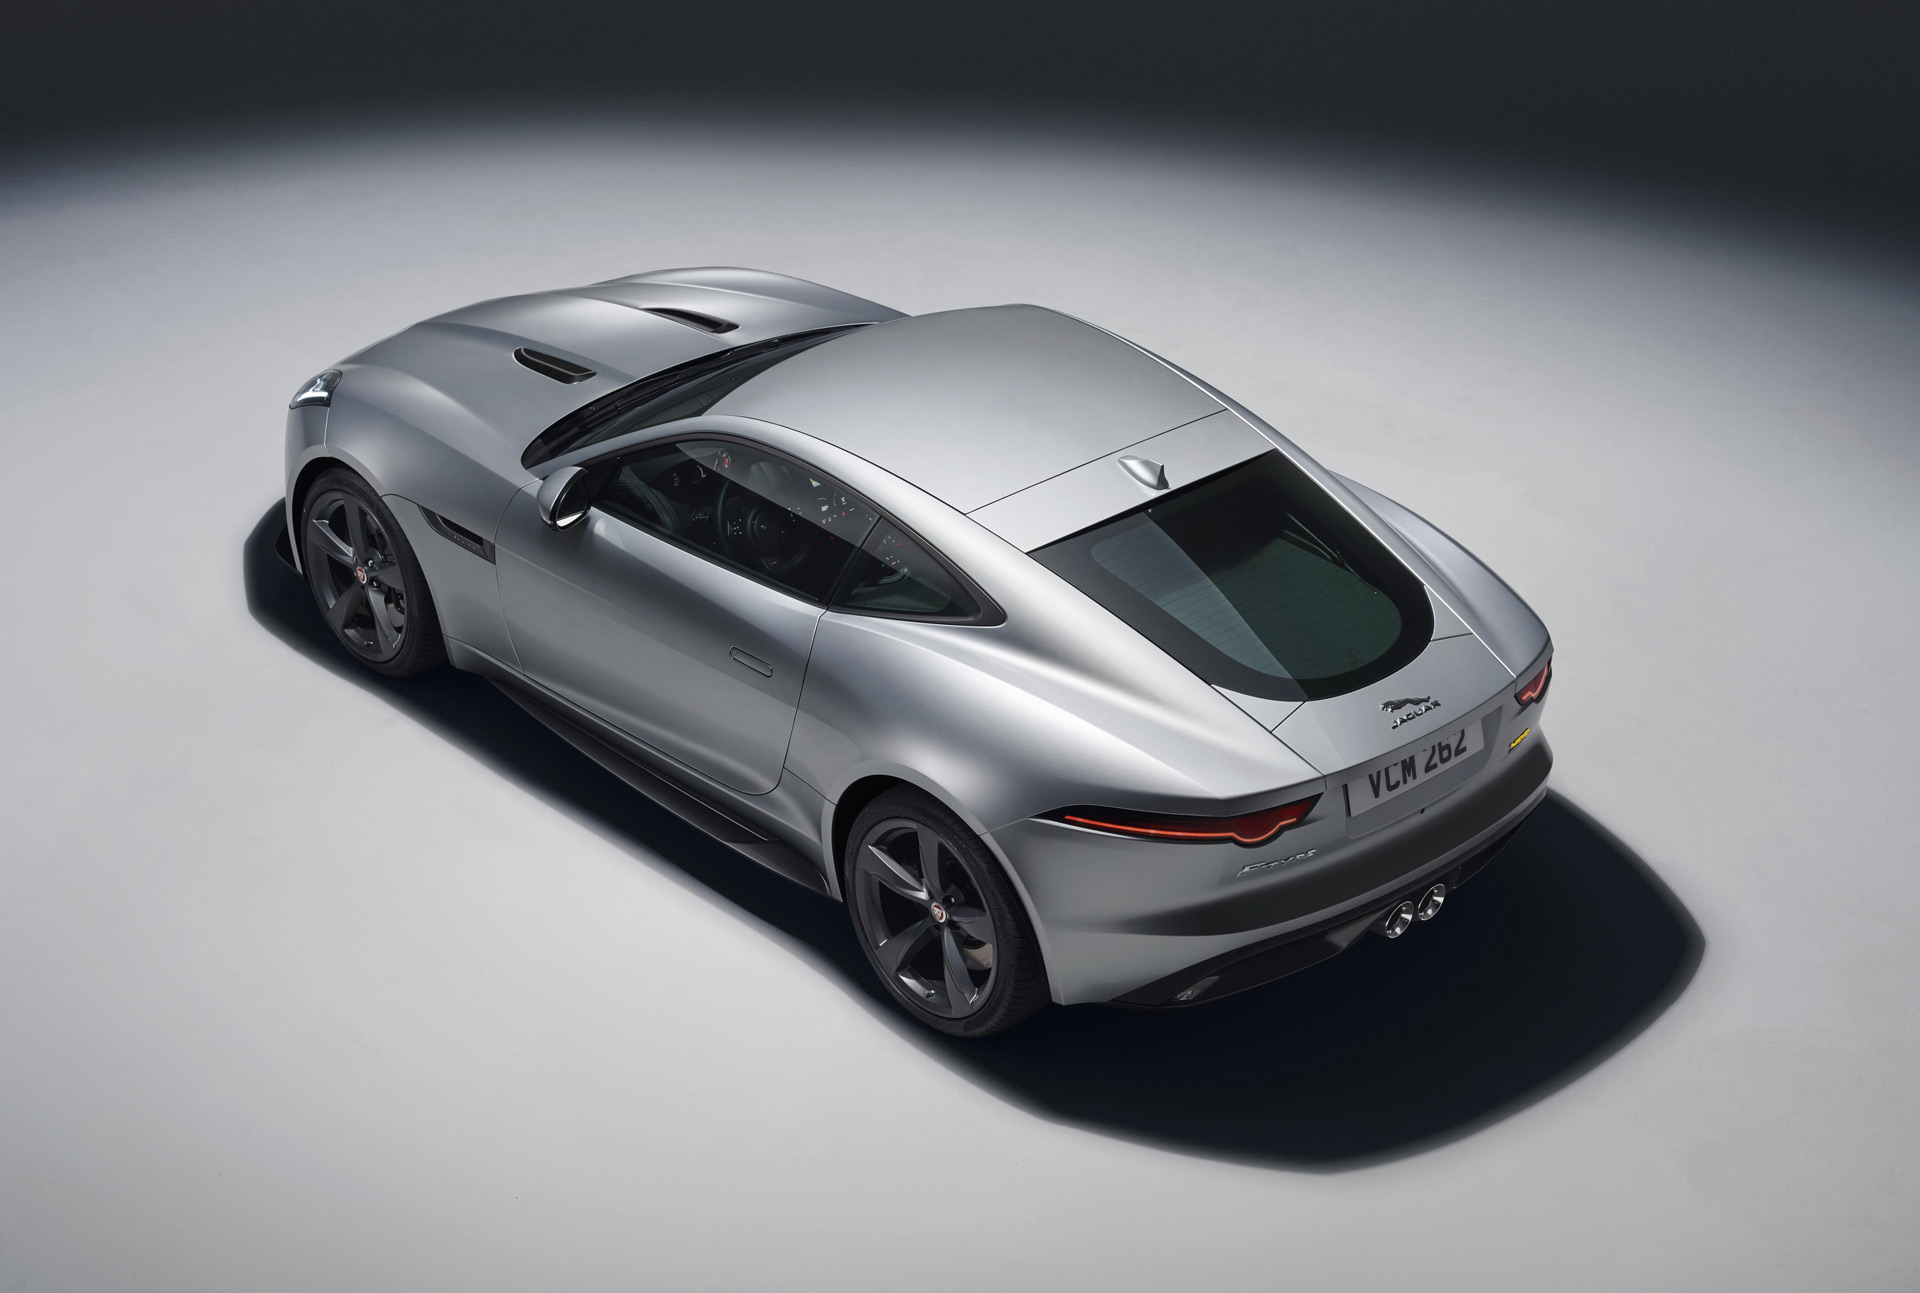 Amg Project One  Ford Gt Mileage  Jaguar F Type Car News Headlines